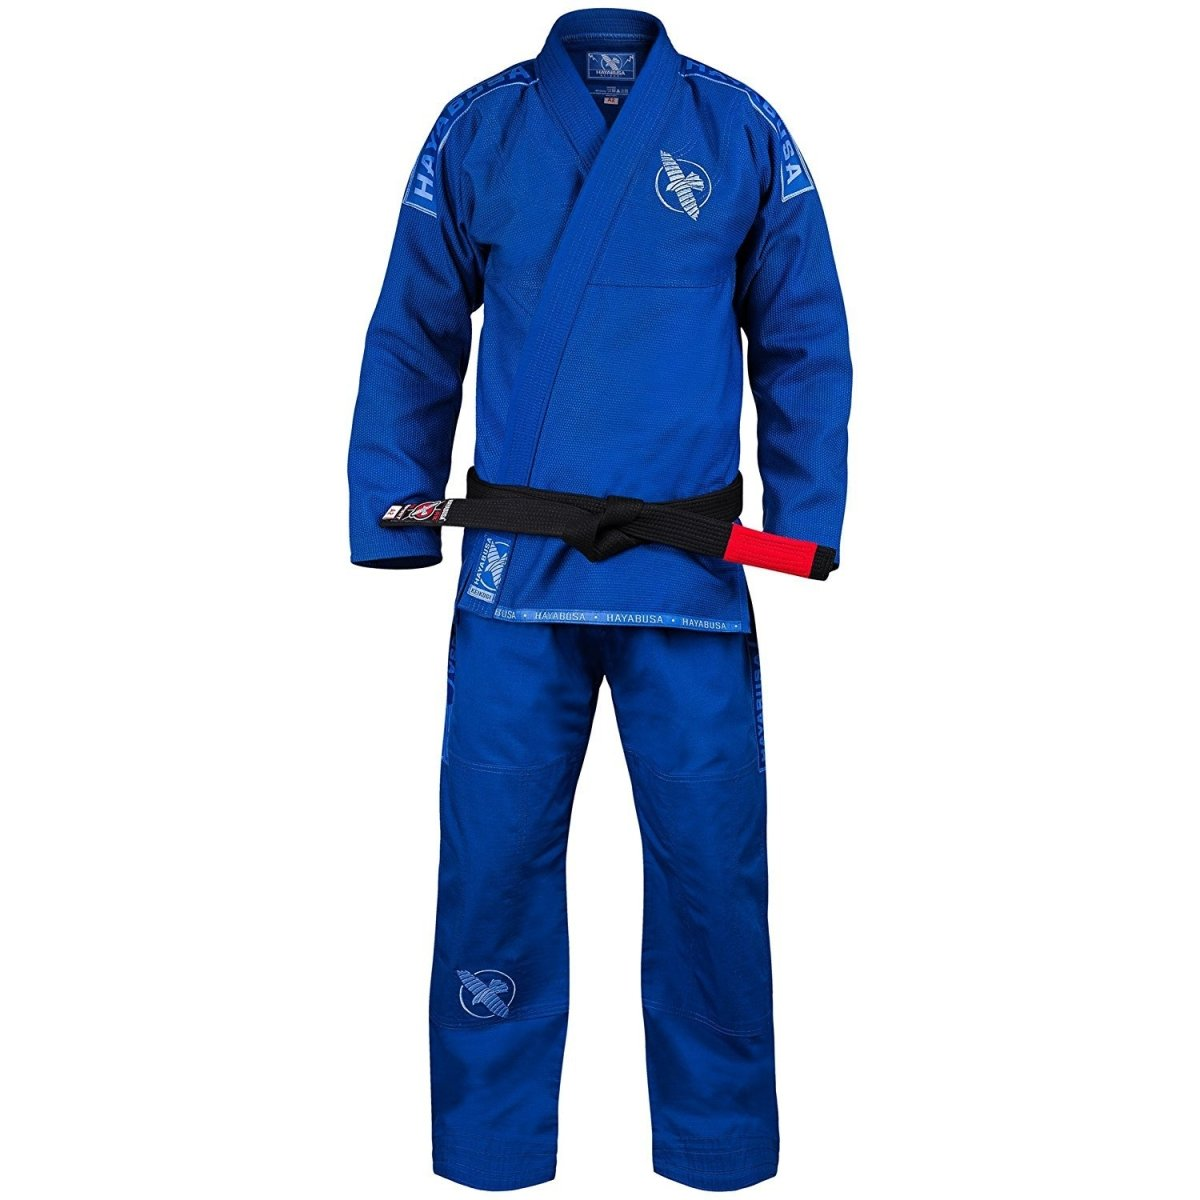 HAYABUSA GI LIGHTWEIGHT BLUE - MSM FIGHT SHOPHAYABUSA